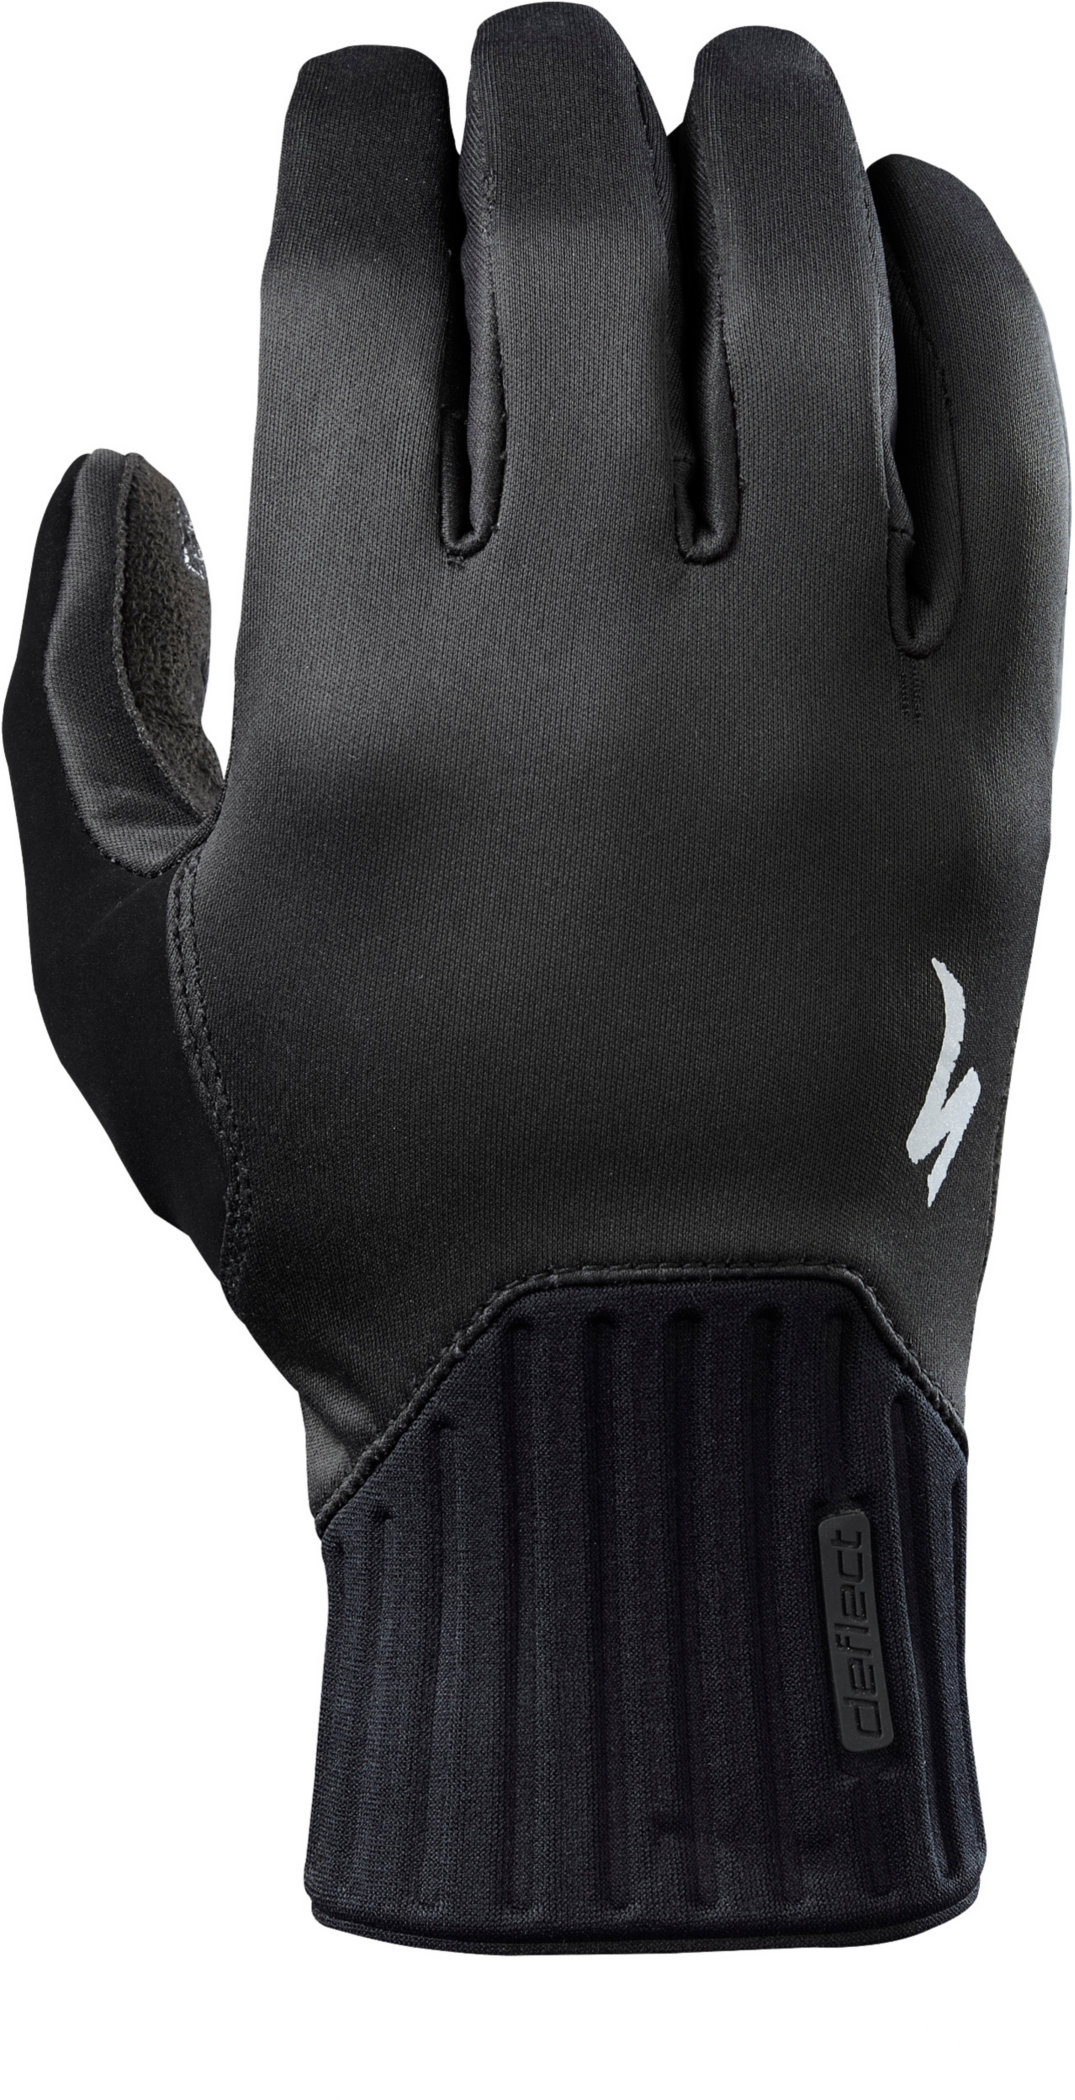 Specialized Deflect Gloves Black Large - Alpha Bikes